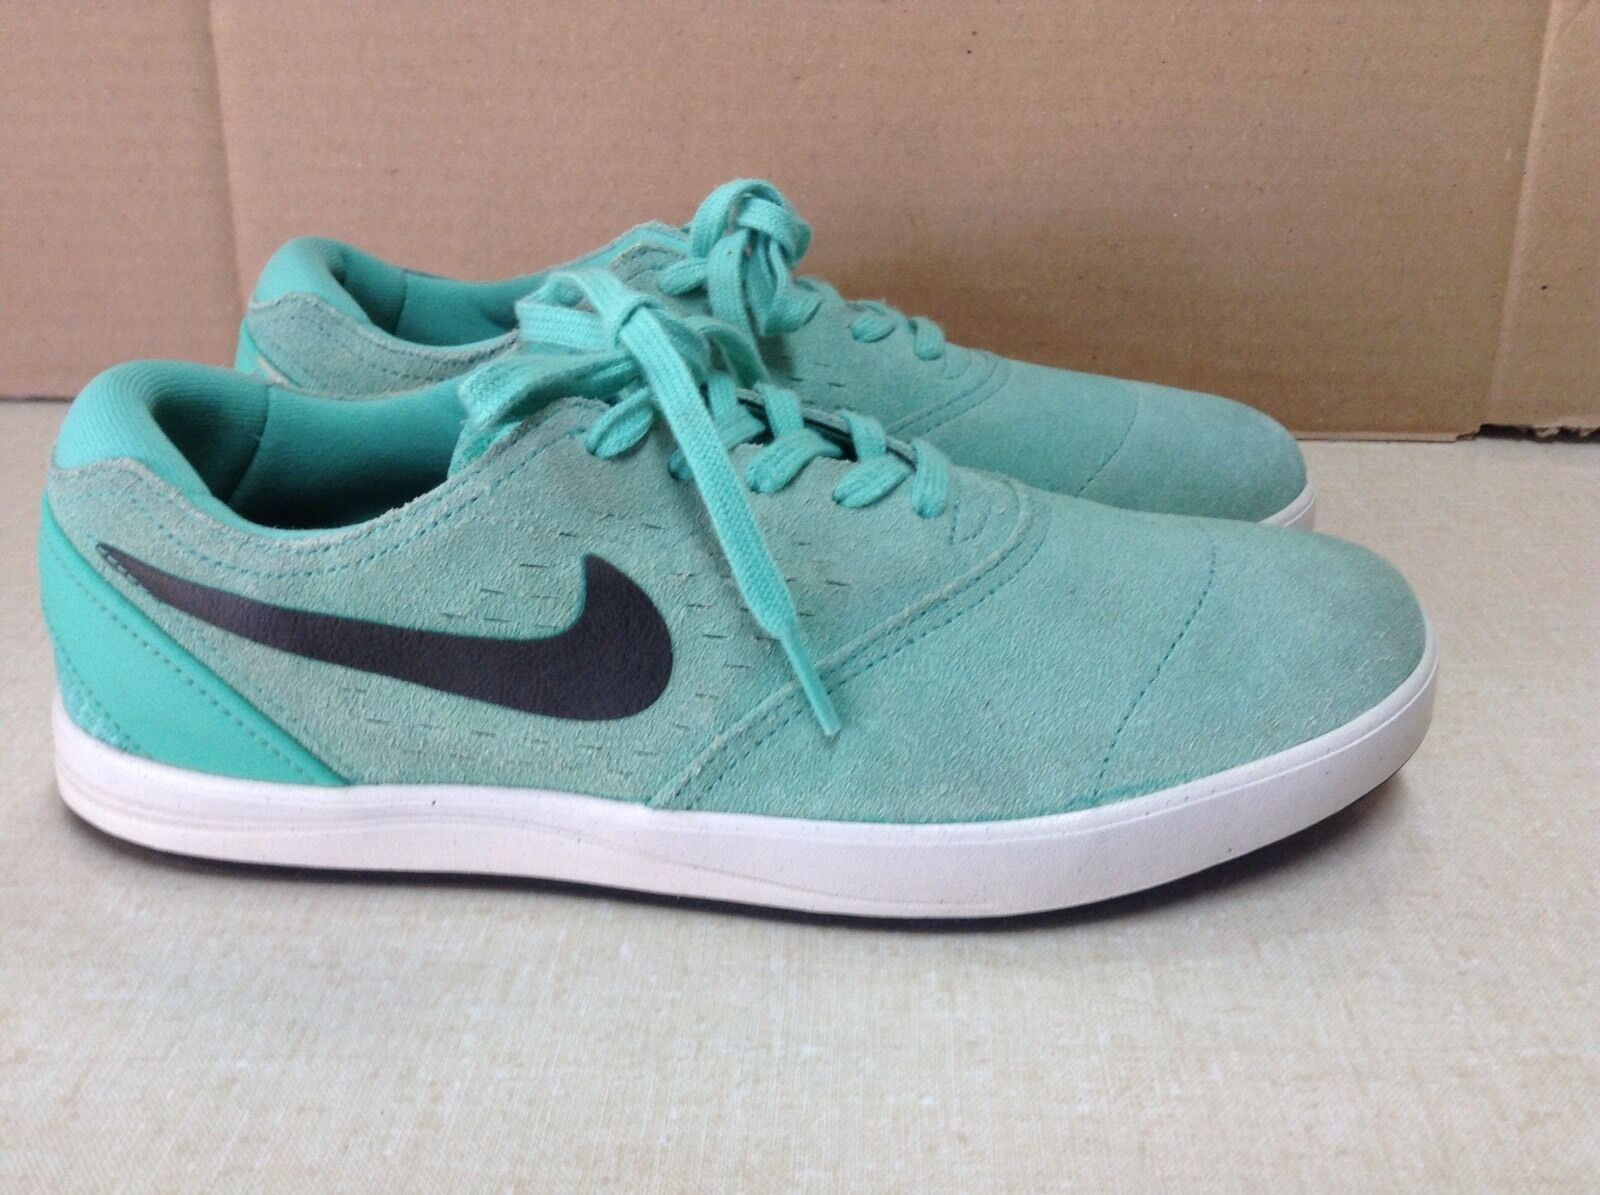 Nike SB Eric Koston 2 Shoes Mens Comfortable Wild casual shoes